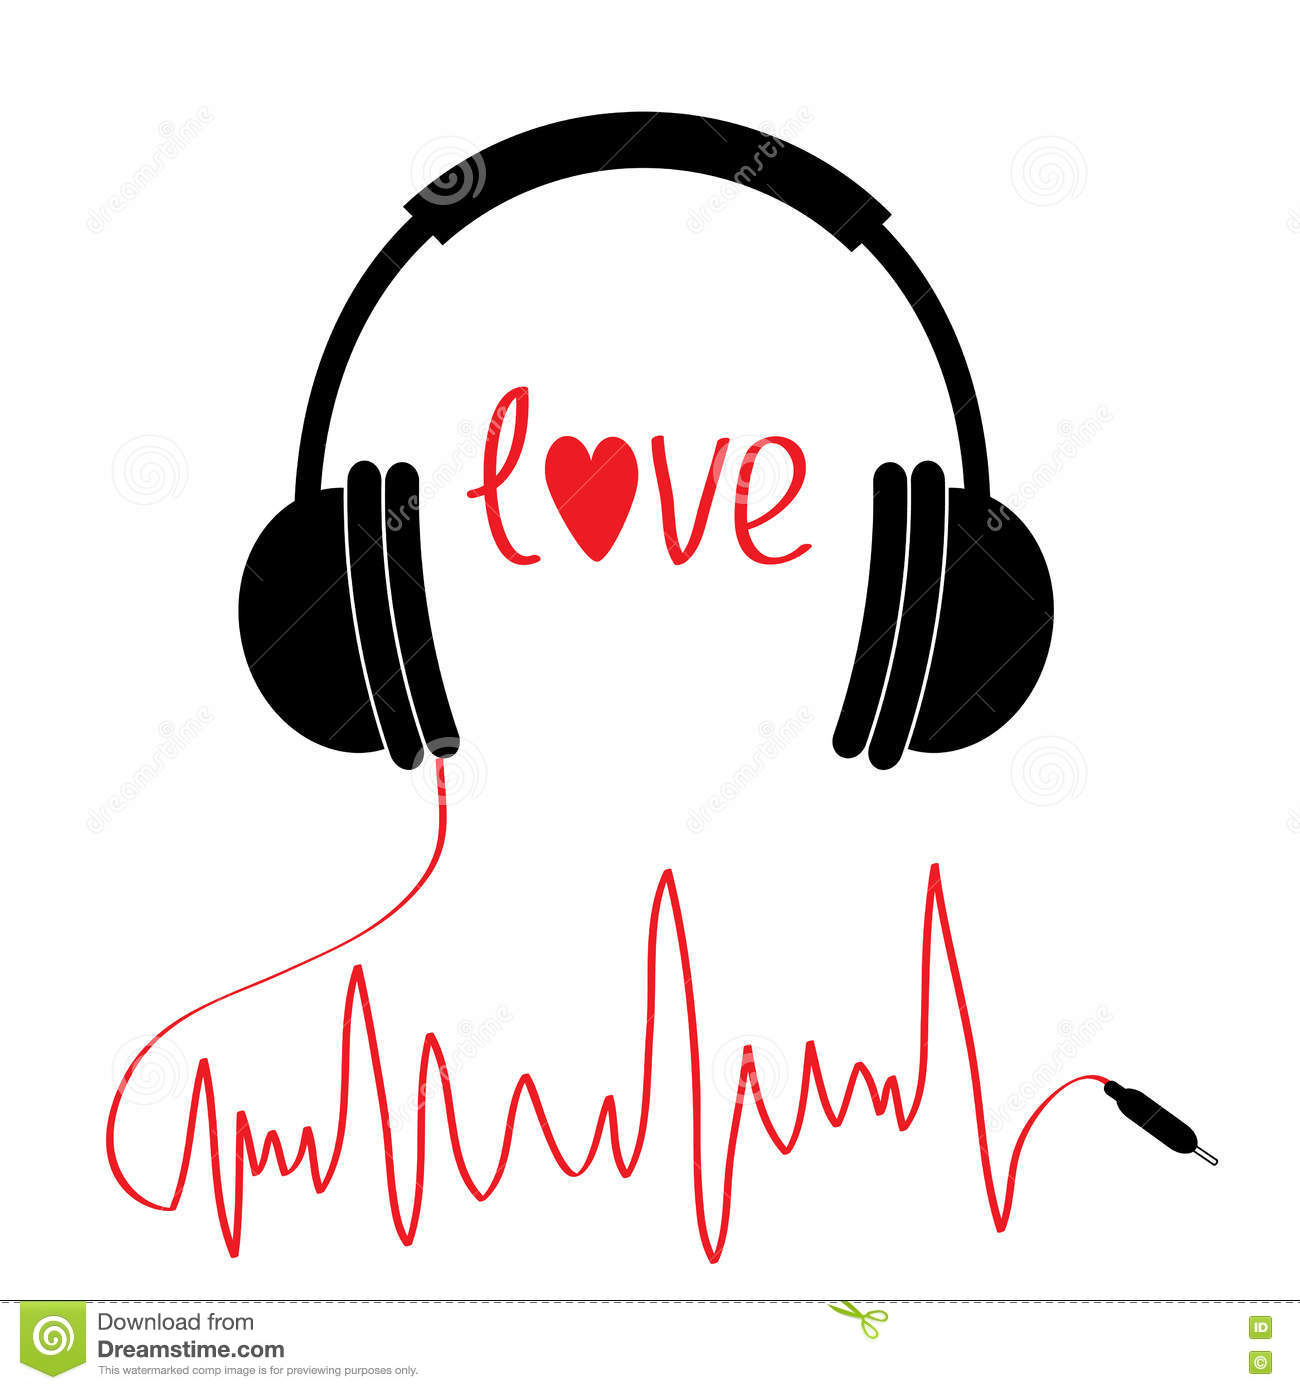 Black headphones icon with red cord in shape of cardiogram. . Love card. Text heart. Flat design. White background.